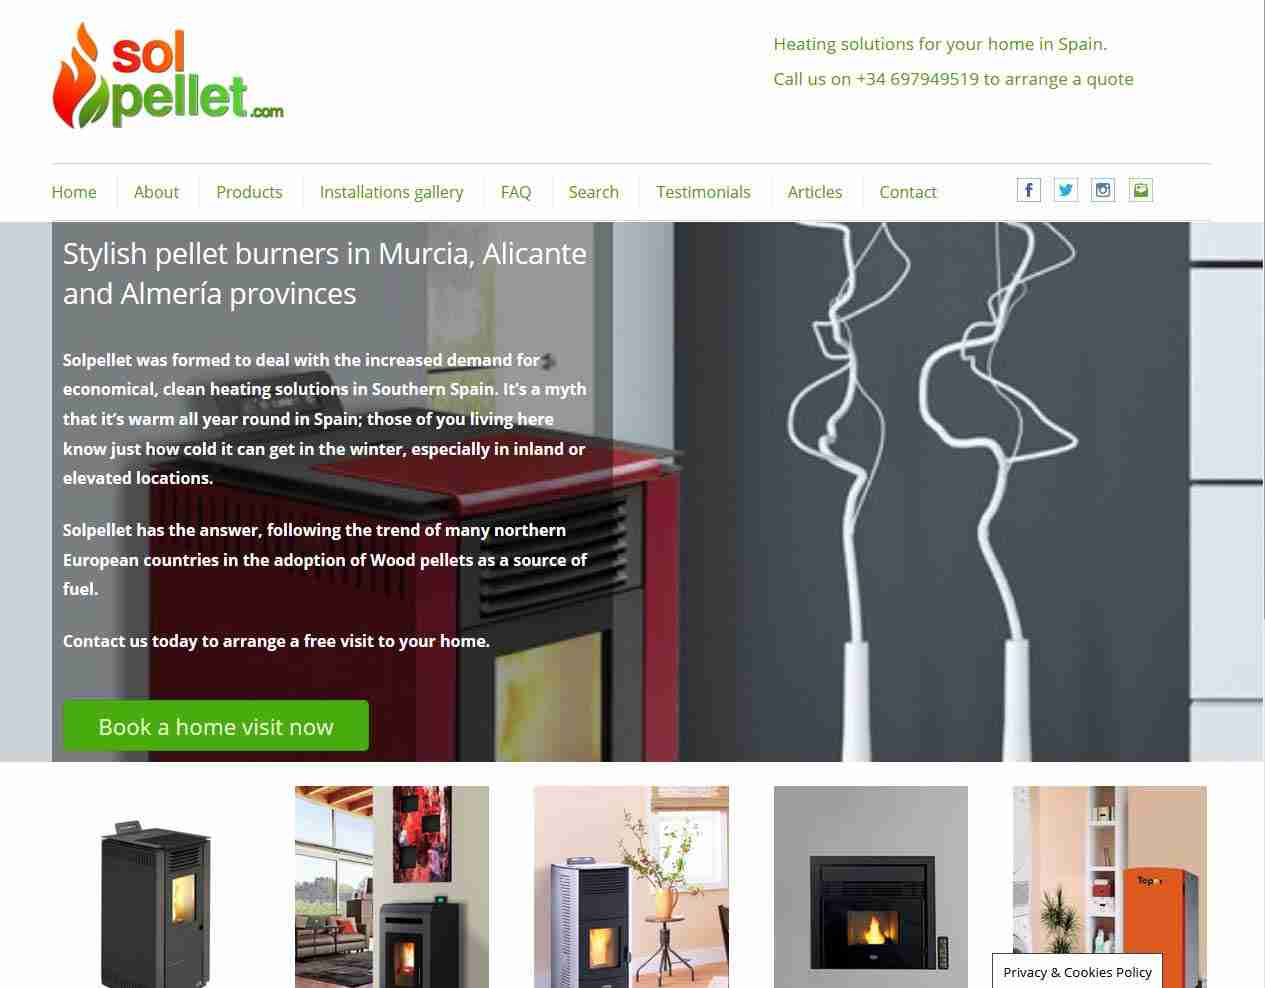 Spain Web Design and more by Gandy-Draper | Fantastic service and excellent communications